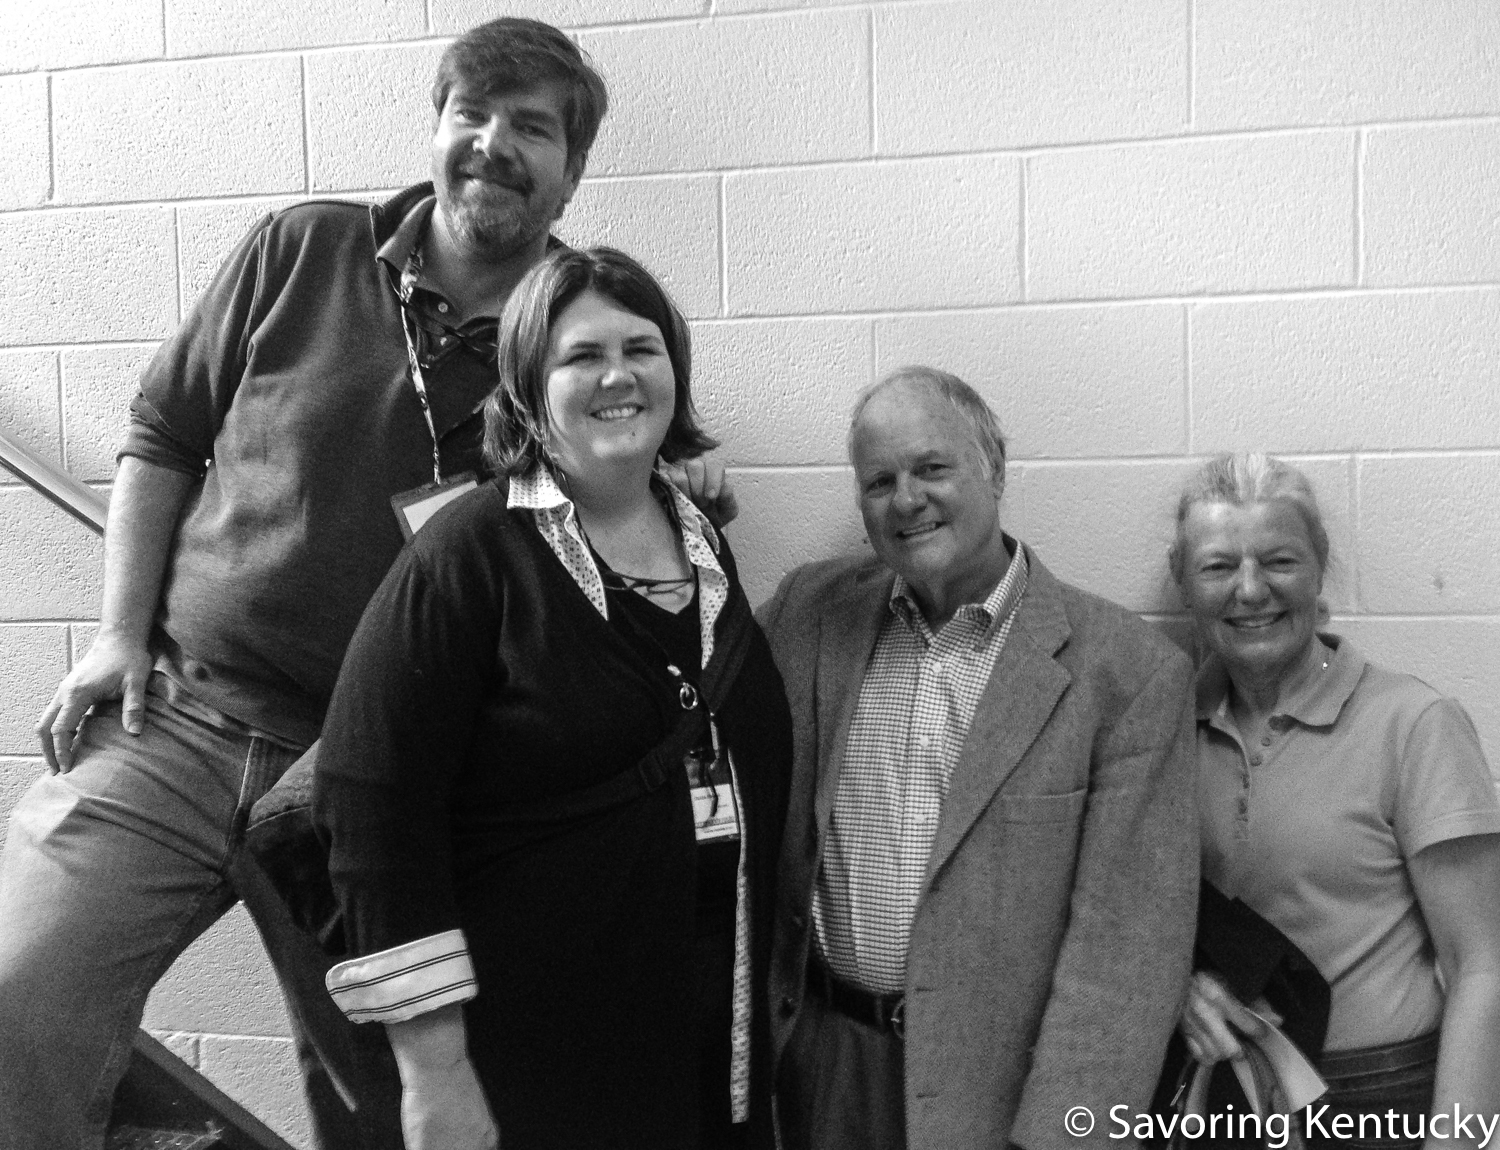 """For  our latest show , Cathy and Harkey Edwards of  Harkness Edwards Vineyards  described the trials and triumphs of learning to grow great wine grapes in Kentucky and then """"not mess them up"""" when making great wine. From left, Chris Michel, Ouita Michel, Harkey Edwards, Cathy Edwards."""